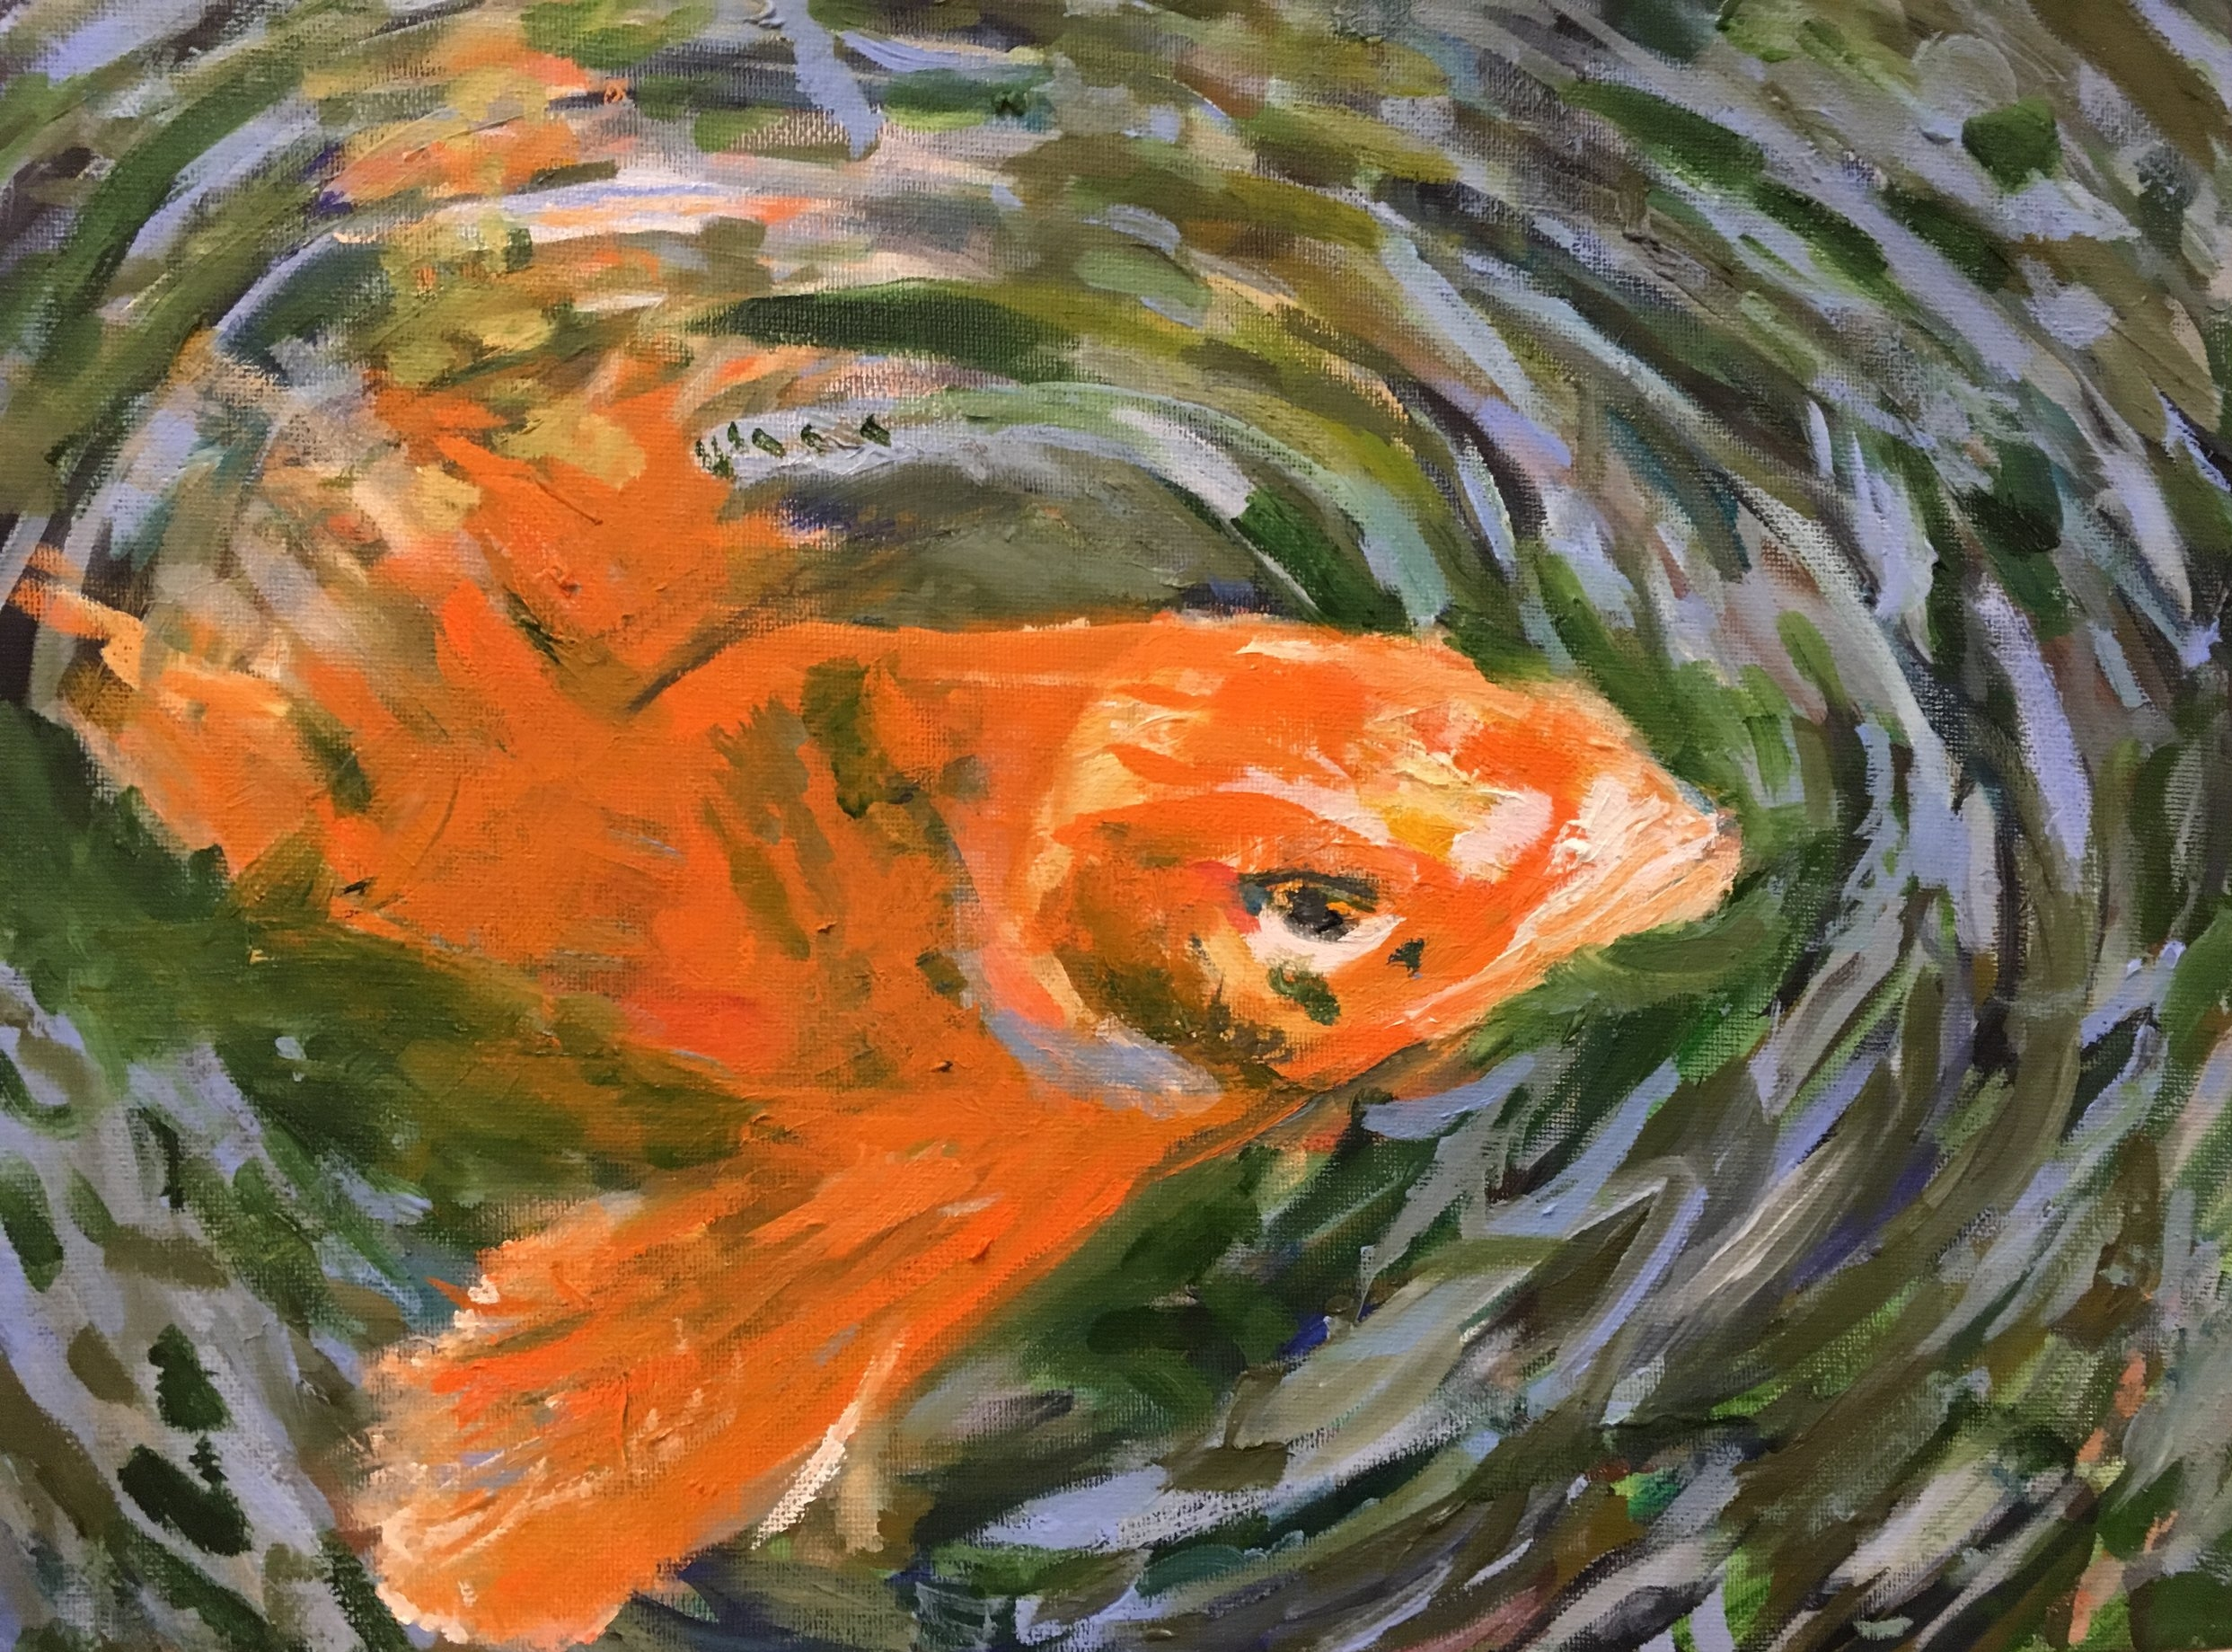 Fish in Pond